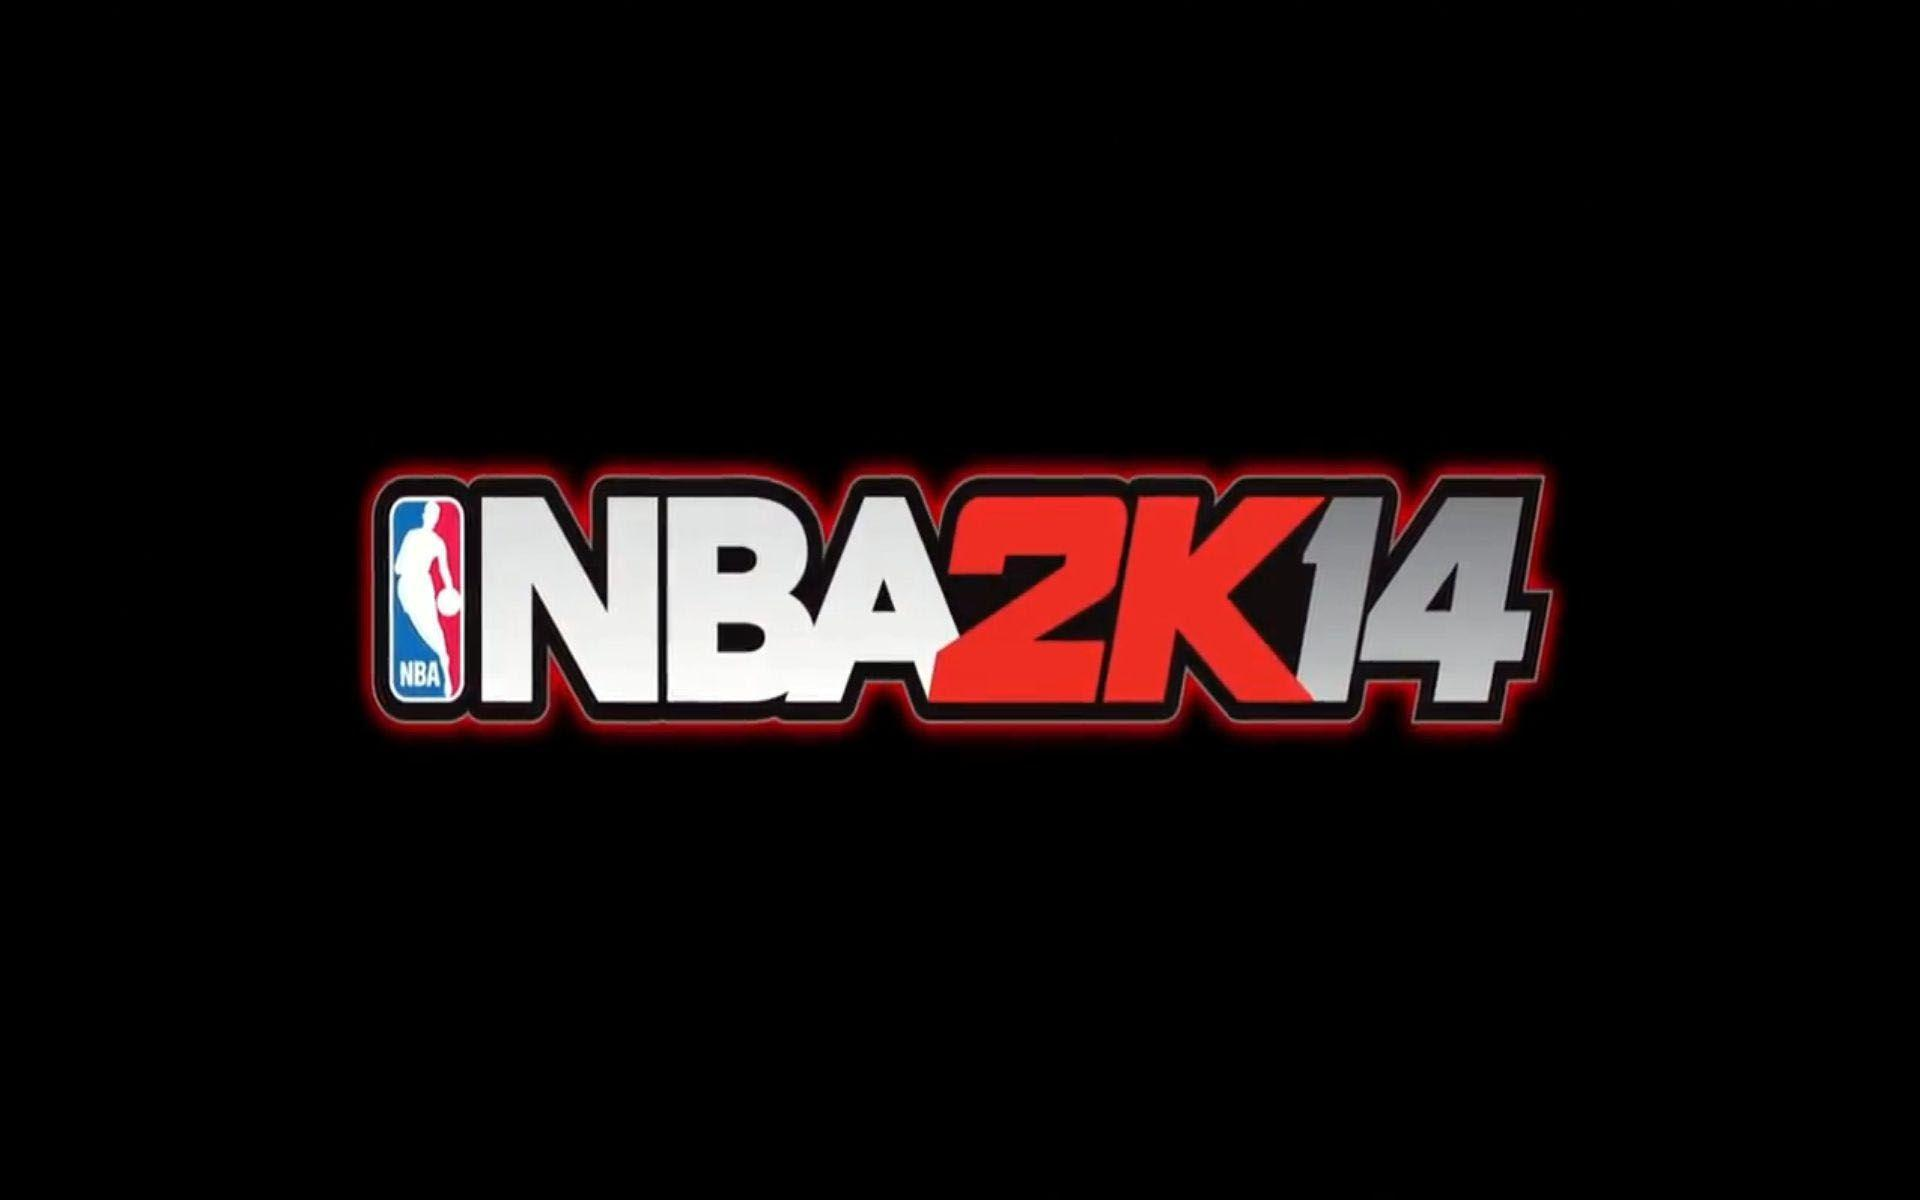 NBA 2K14 Logo - 1920x1200 - Full HD 16/10 - Wallpaper #3391 on ...